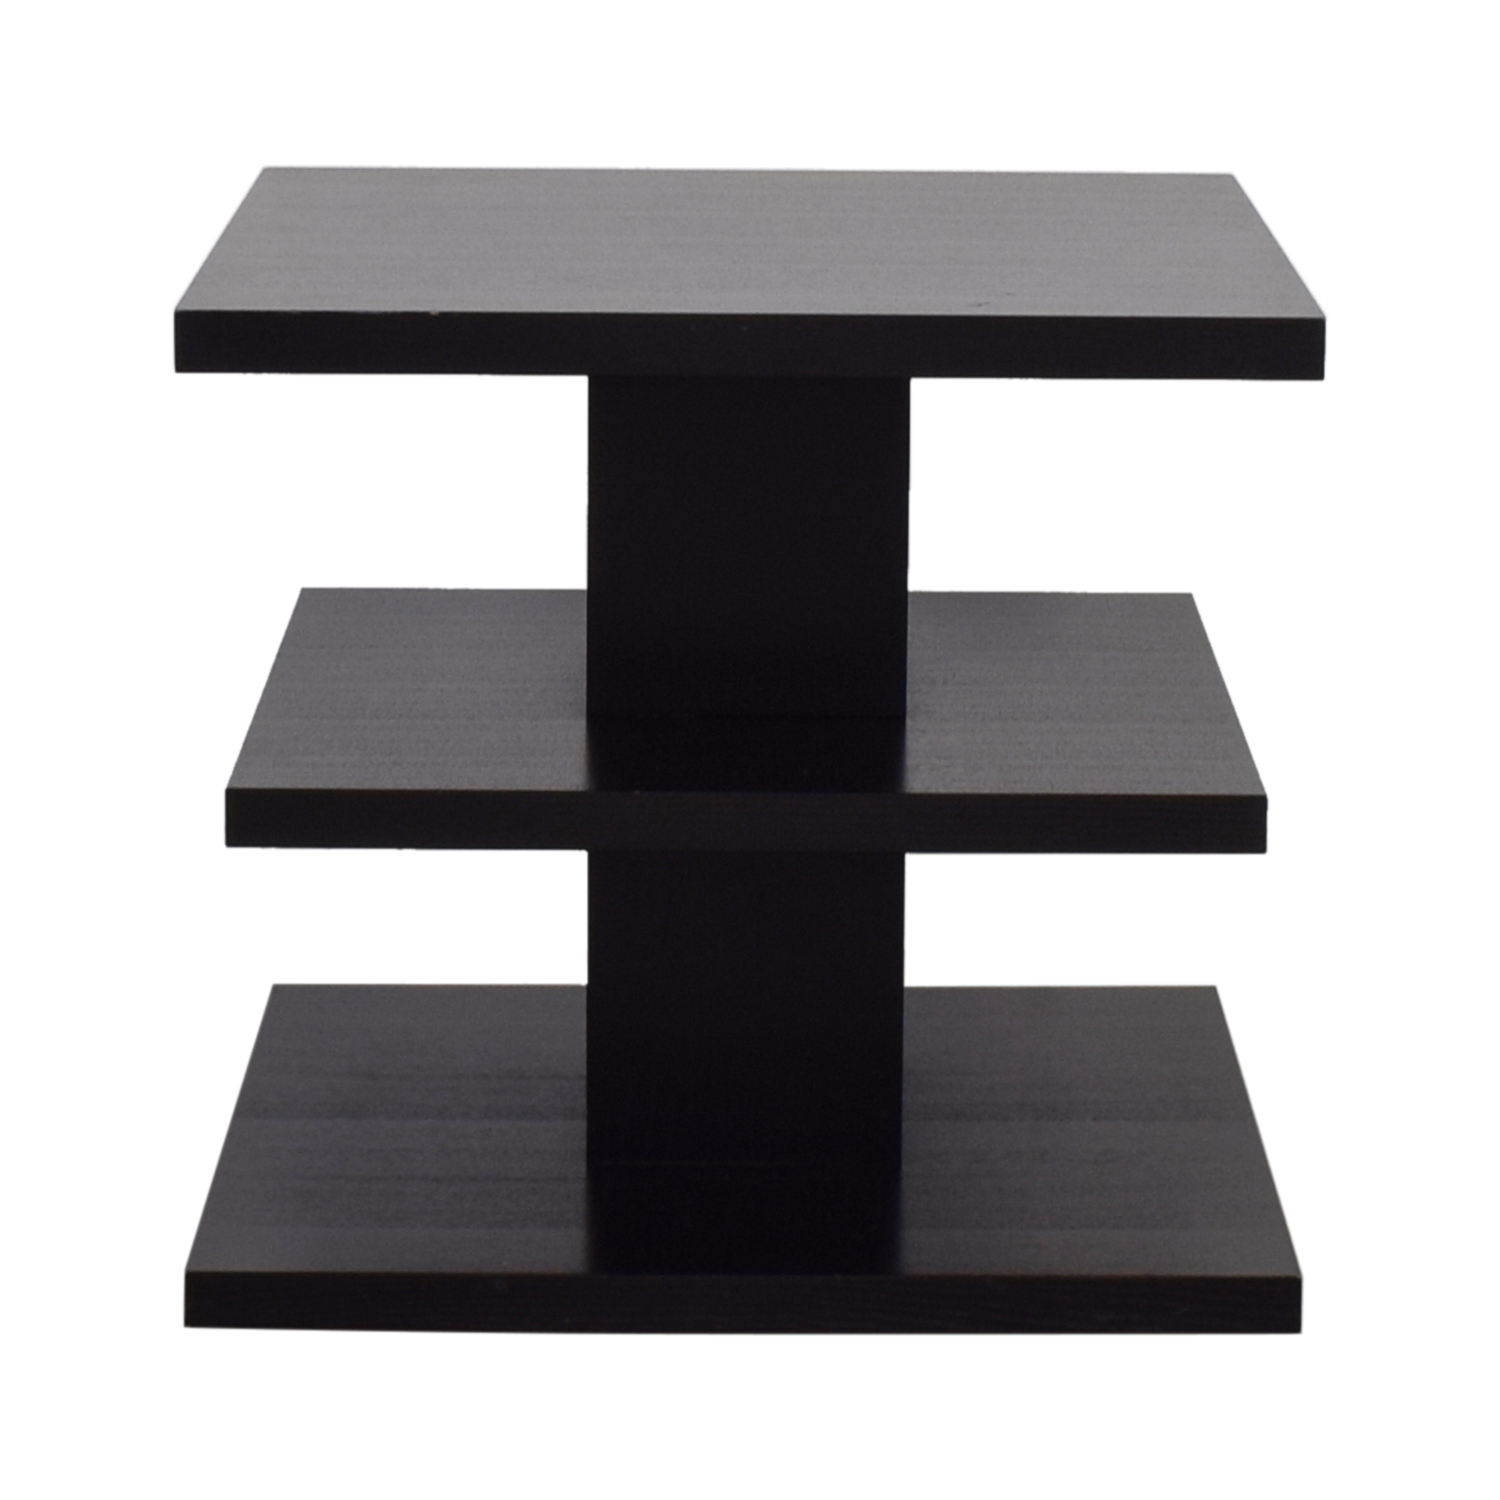 Ethan Allen Ethan Allen Oly Lateral End Table on sale